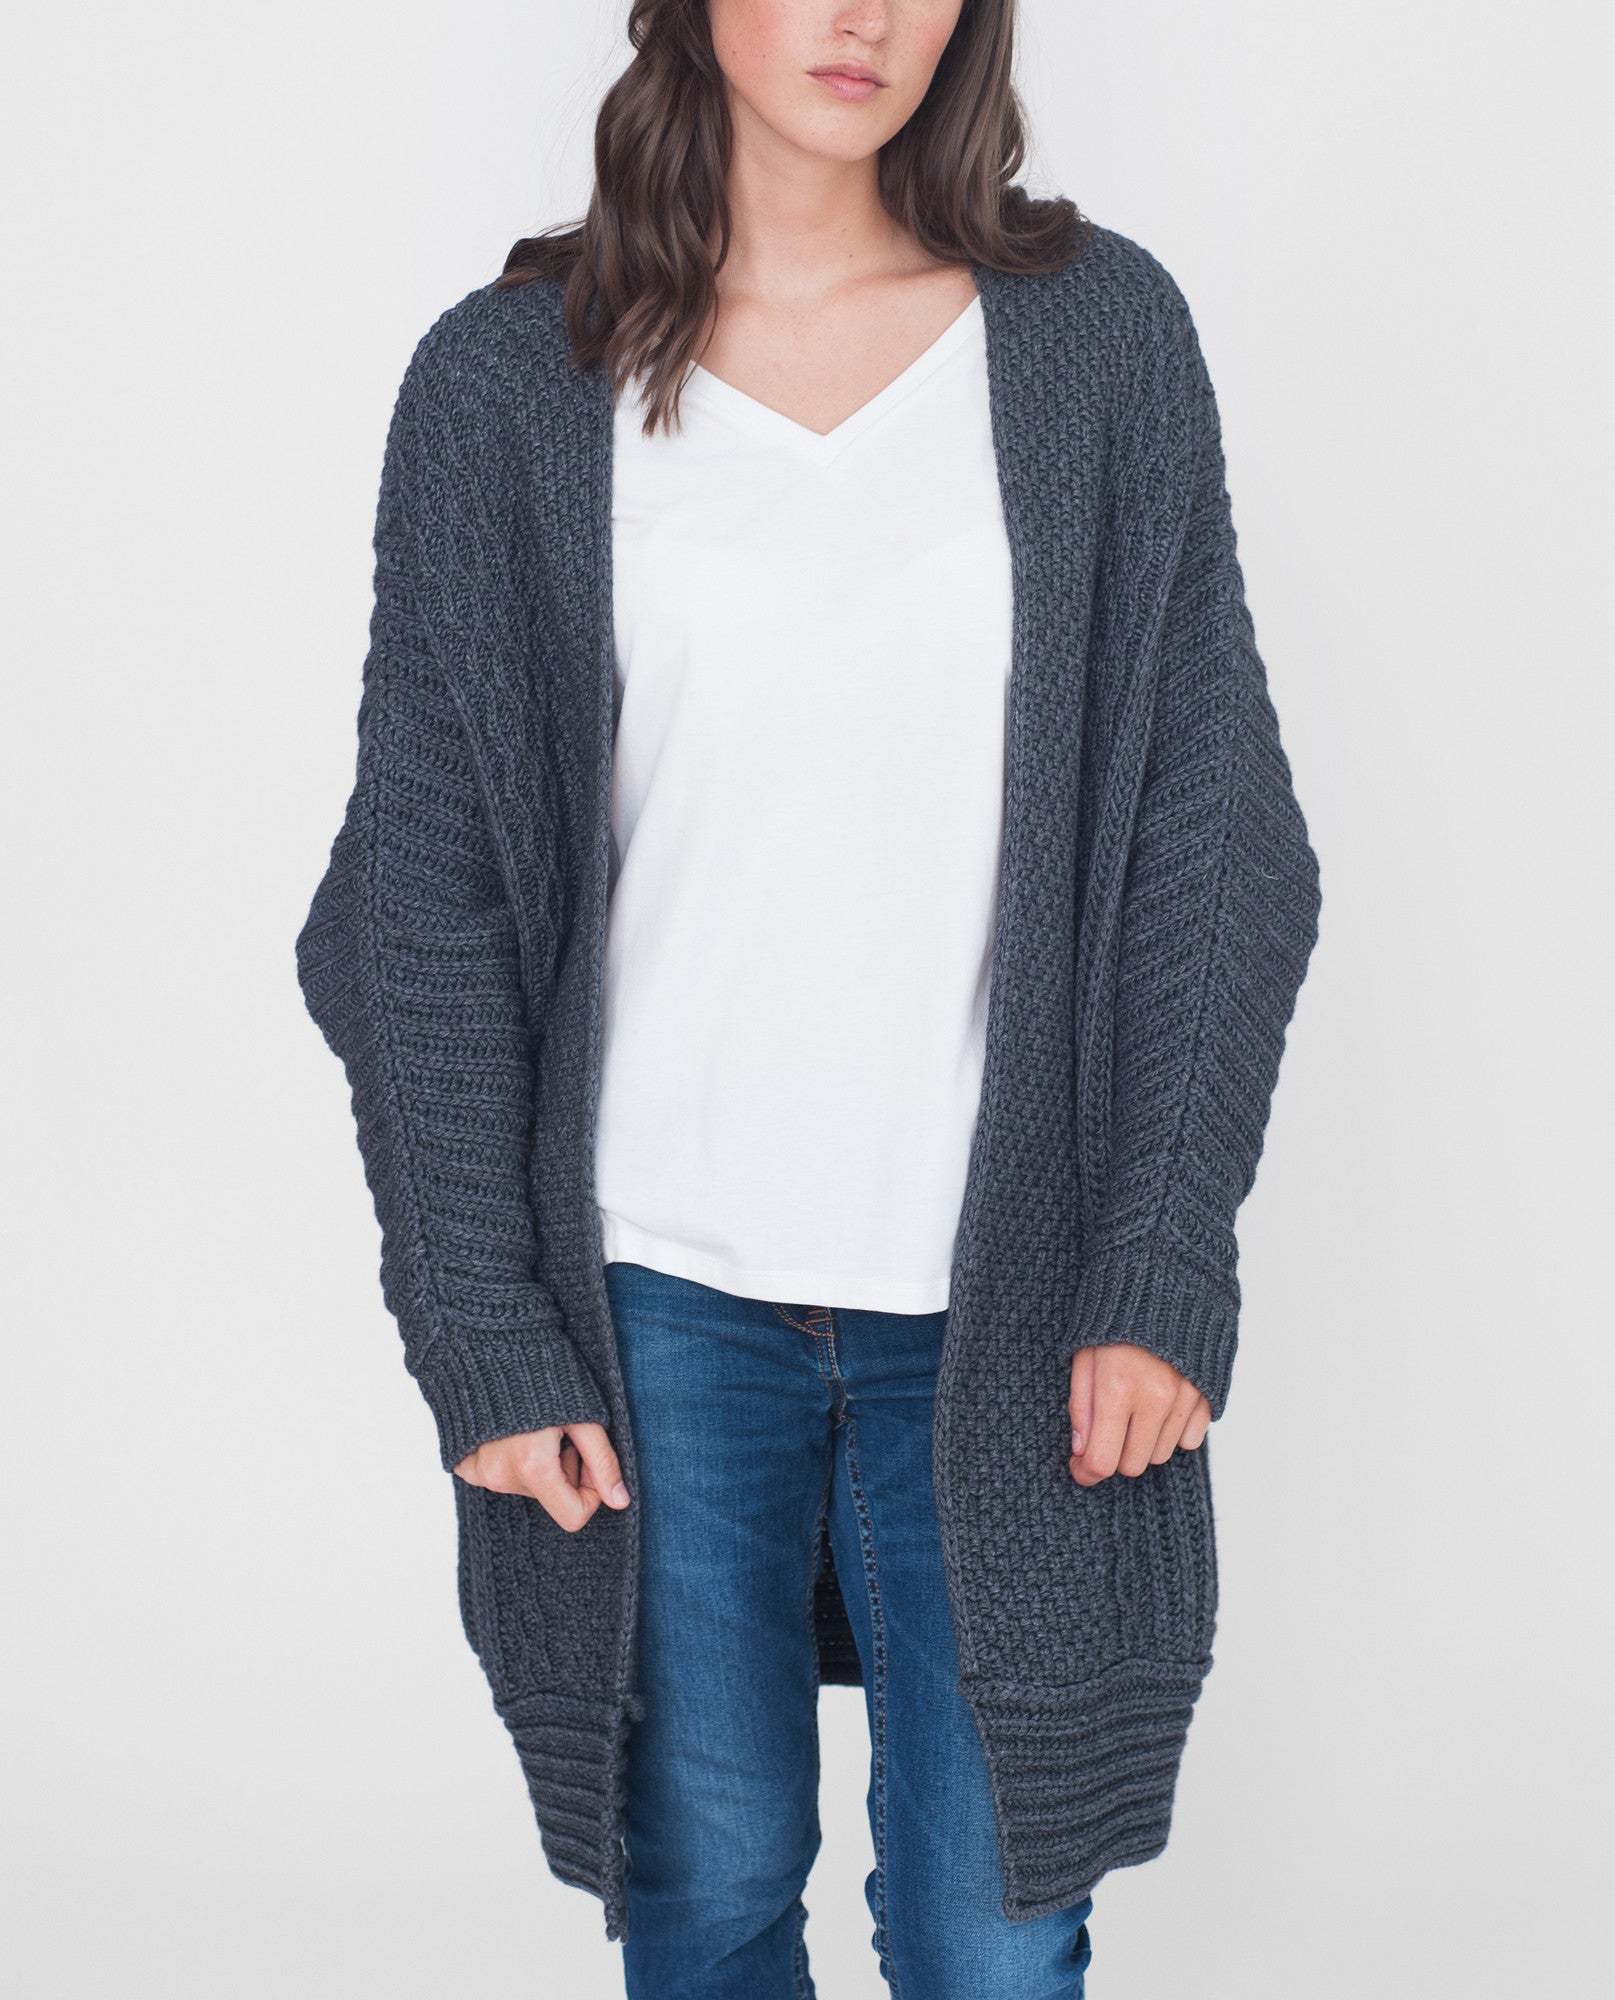 LUCINDA Wool and Cashmere Cardigan In Dark Grey